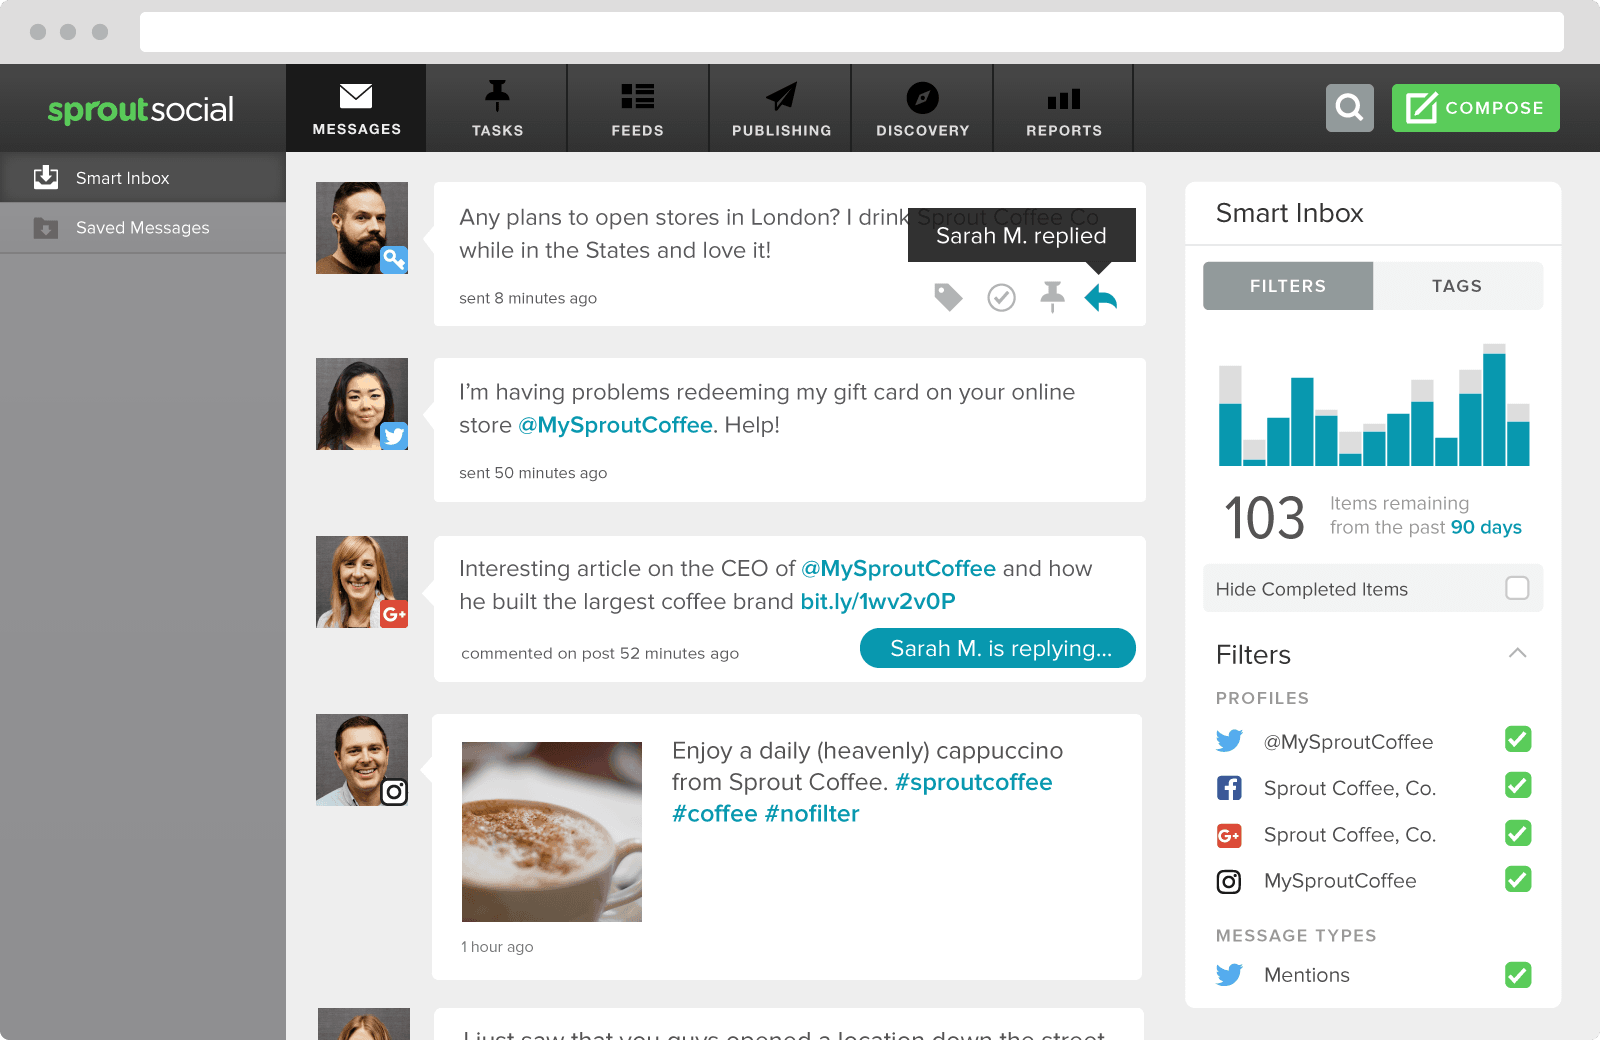 Sprout offers a real-time engagement feed so you in no way miss your most important interactions